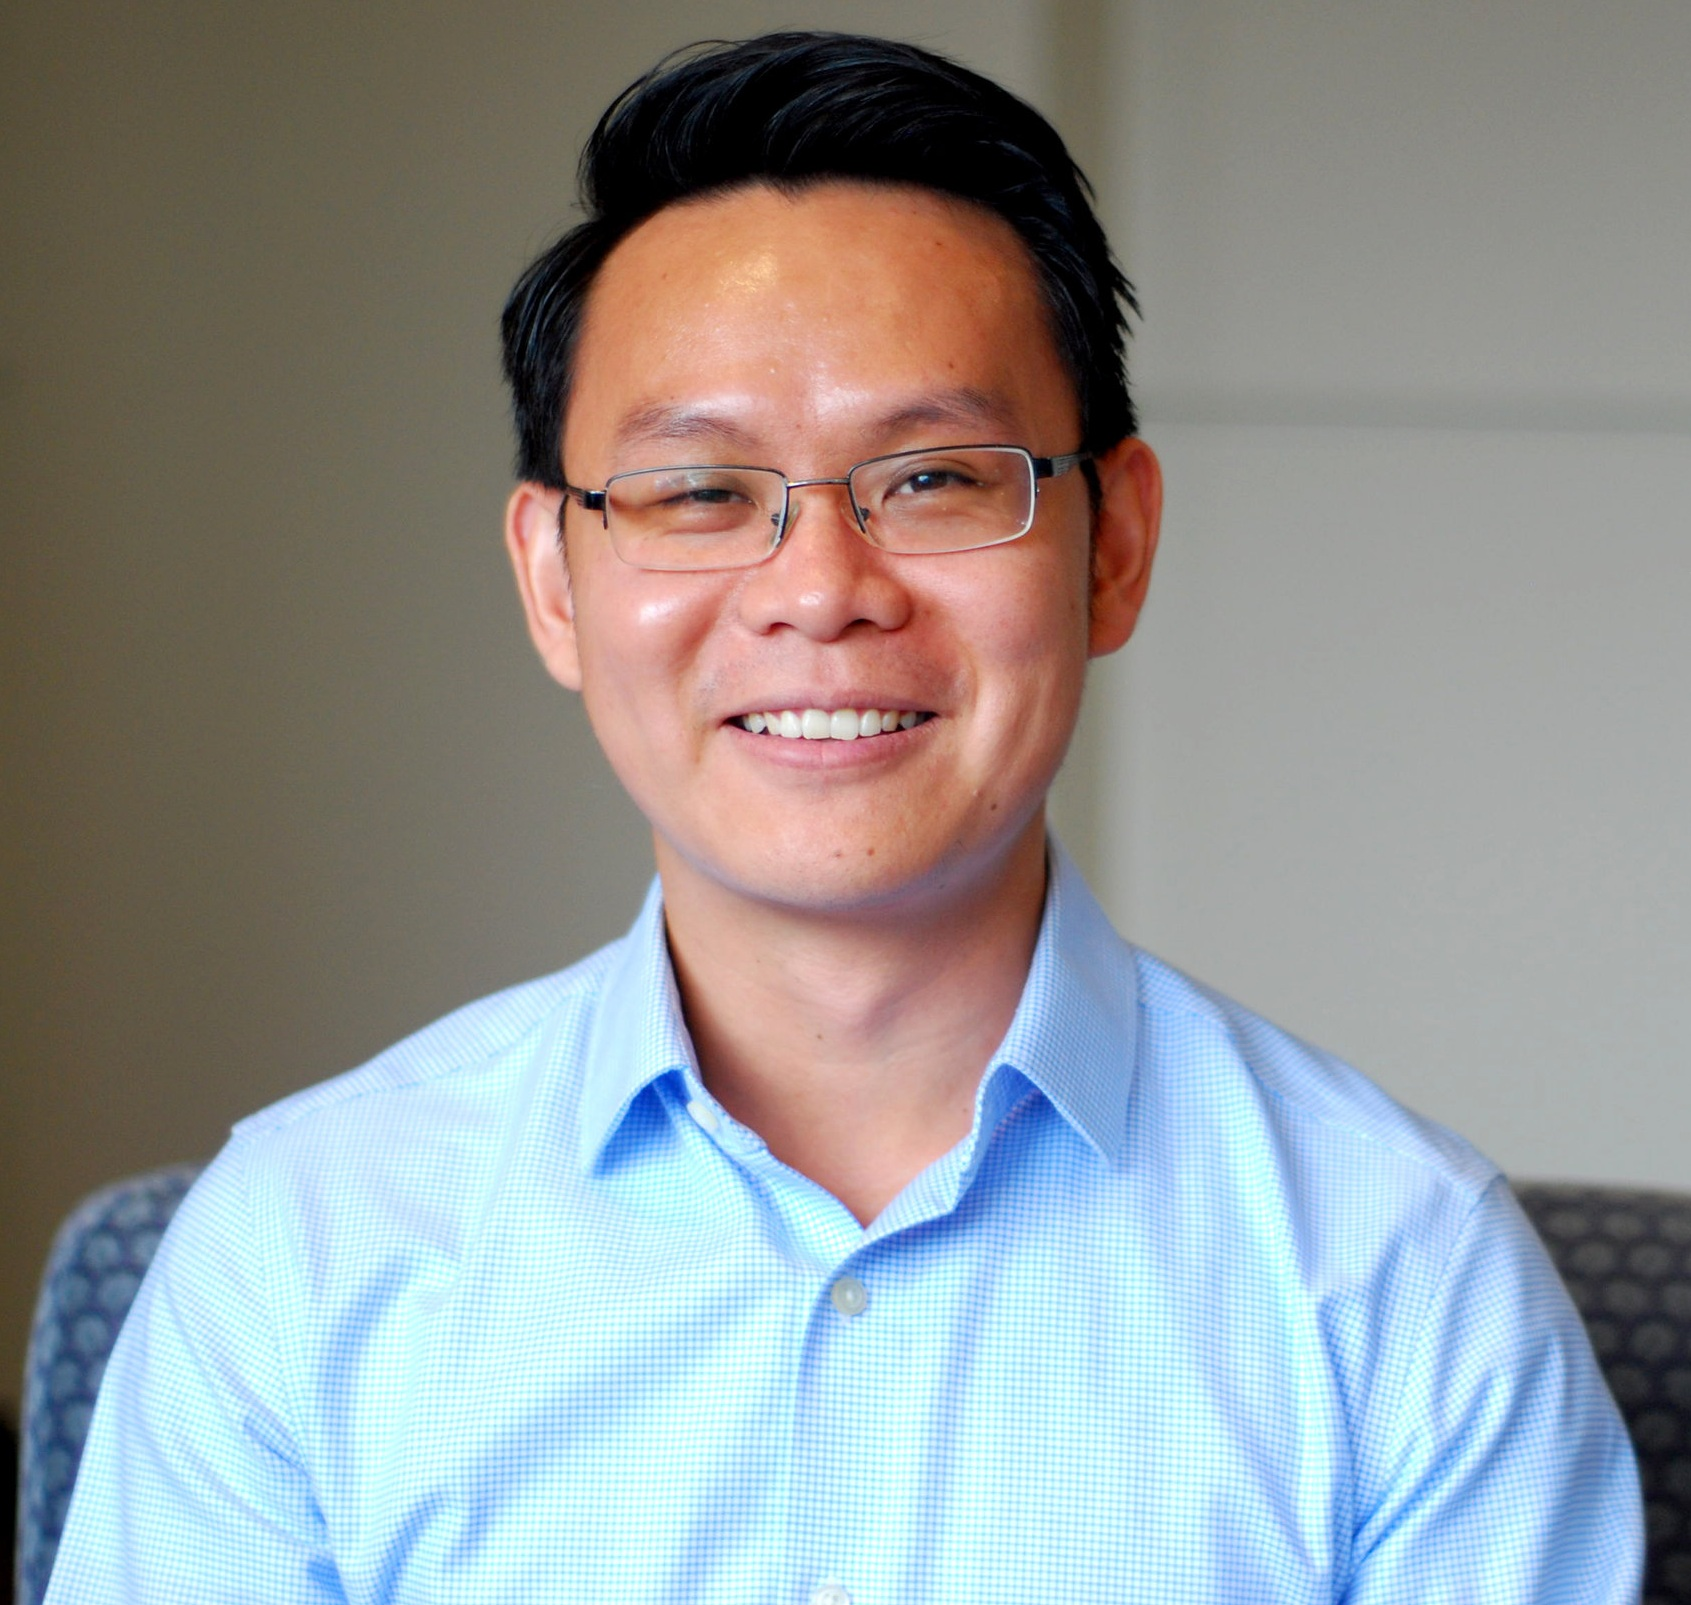 Vice President and Co-Founder   Jinxiang (Jin) is an inventor and co-founder of Purilogics. Jin is a graduate from National Science Foundation Innovation-Corps program, and he is an internationally recognized expert in the field of polymeric thin-film composite membranes. Jin has spent 10+ years developing high-performance membranes and processes for chemical and biologic purification. Jin's leadership has included service as Vice President at Purilogics managing company's day-to-day operation, and Principal Investigator on multiple Purilogics small business innovation research (SBIR) grants to build high capacity and high selectivity membrane chromatography products for biologic purification. Jin holds degrees in Chemical Engineering from Clemson University (PhD, 2013) and Tongii University, China (BS, 2008).